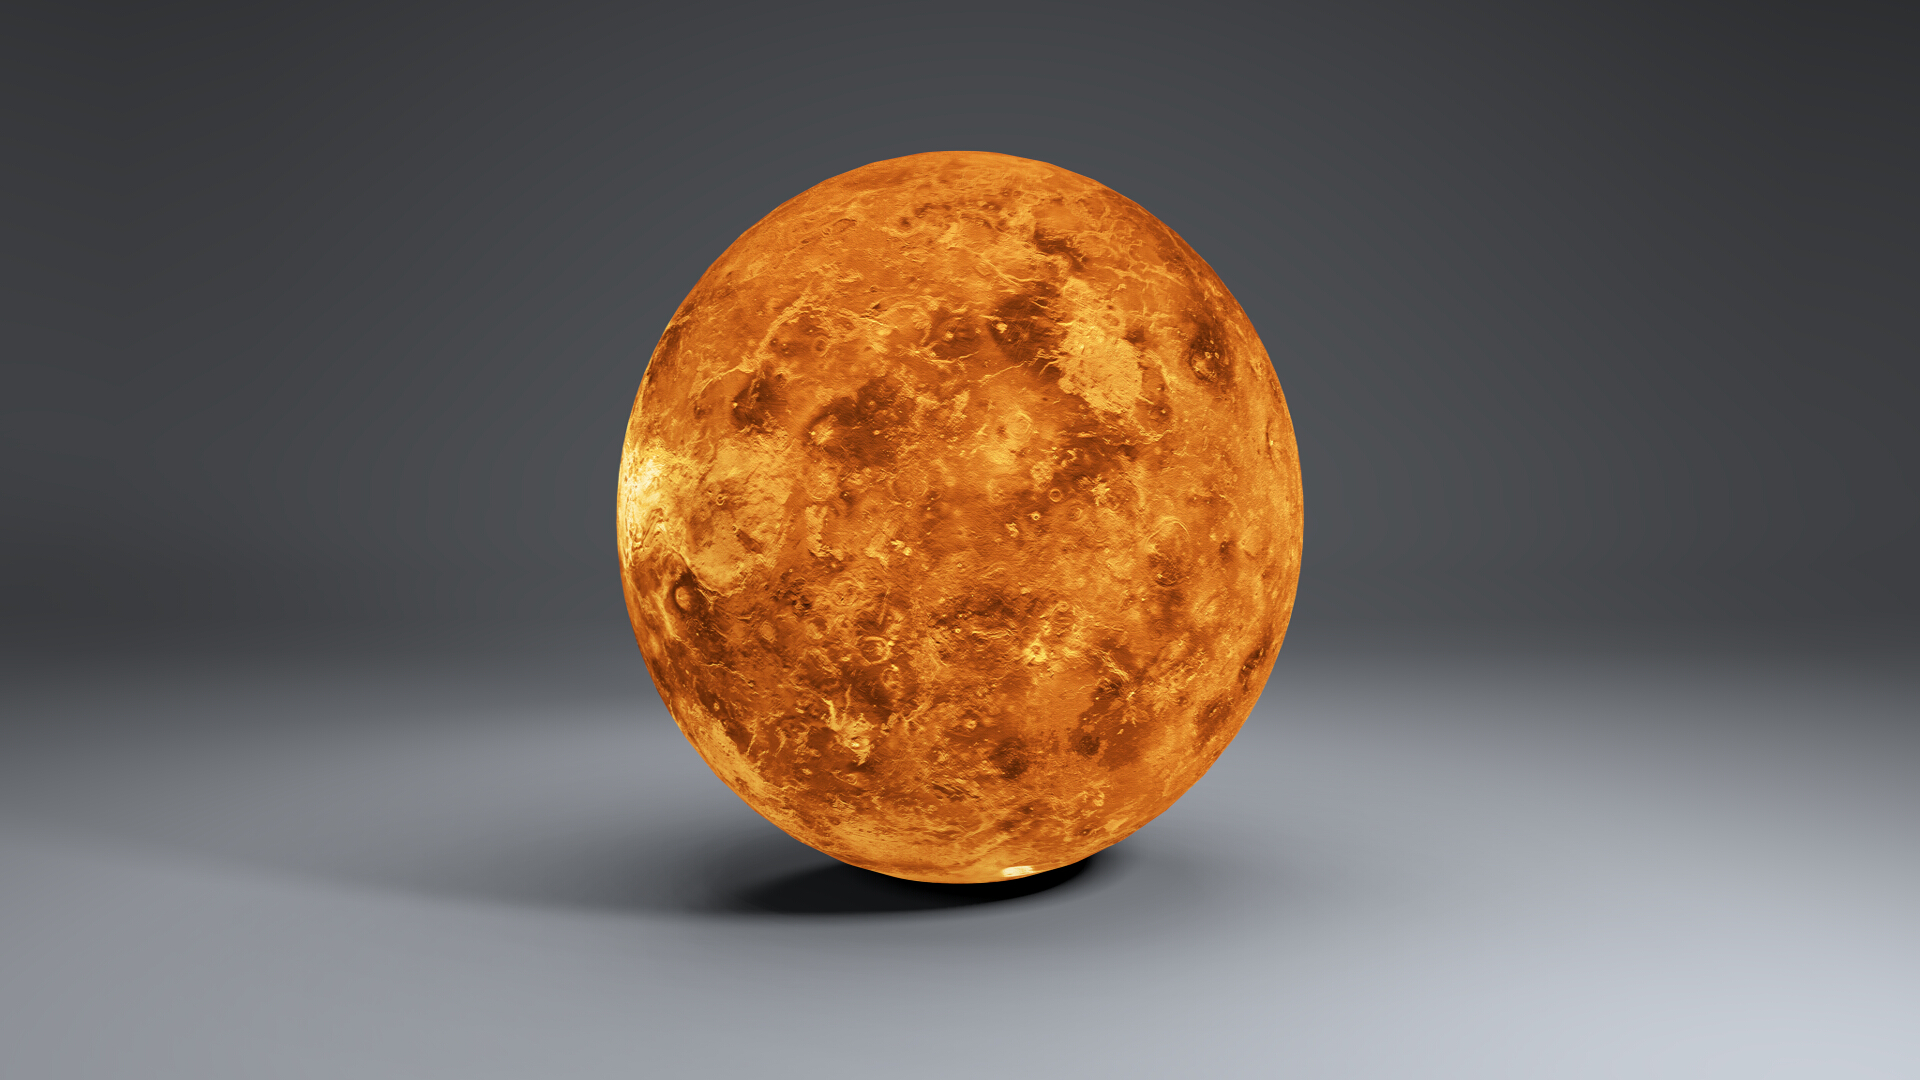 venus globe 8k 3d model 3ds fbx blend dae obj 267719